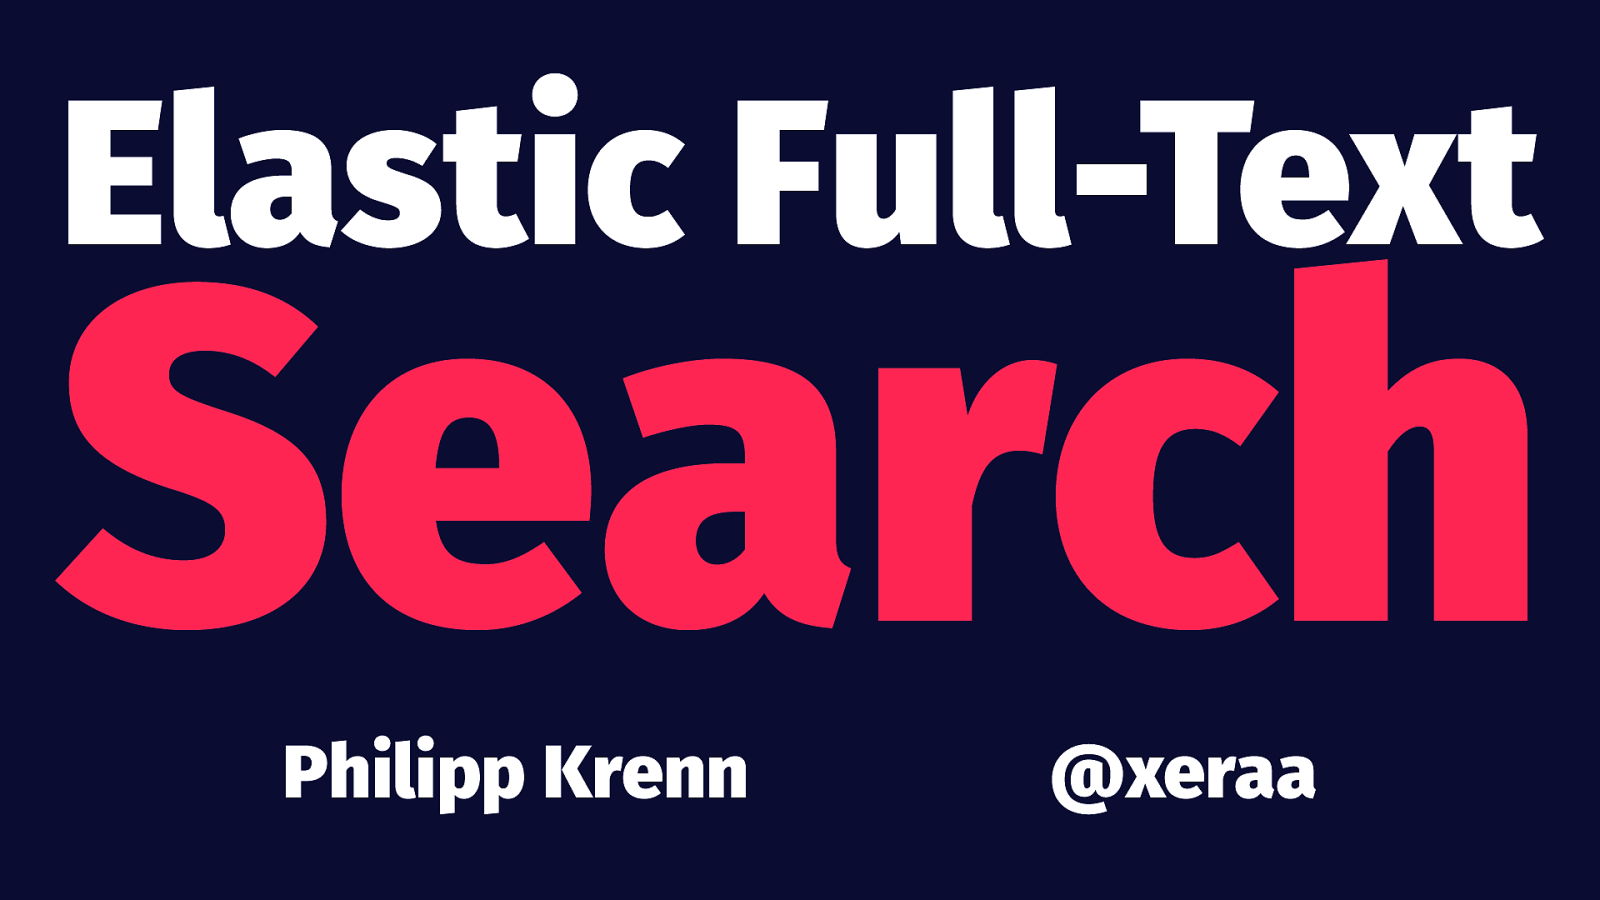 Elastic Full-Text Search